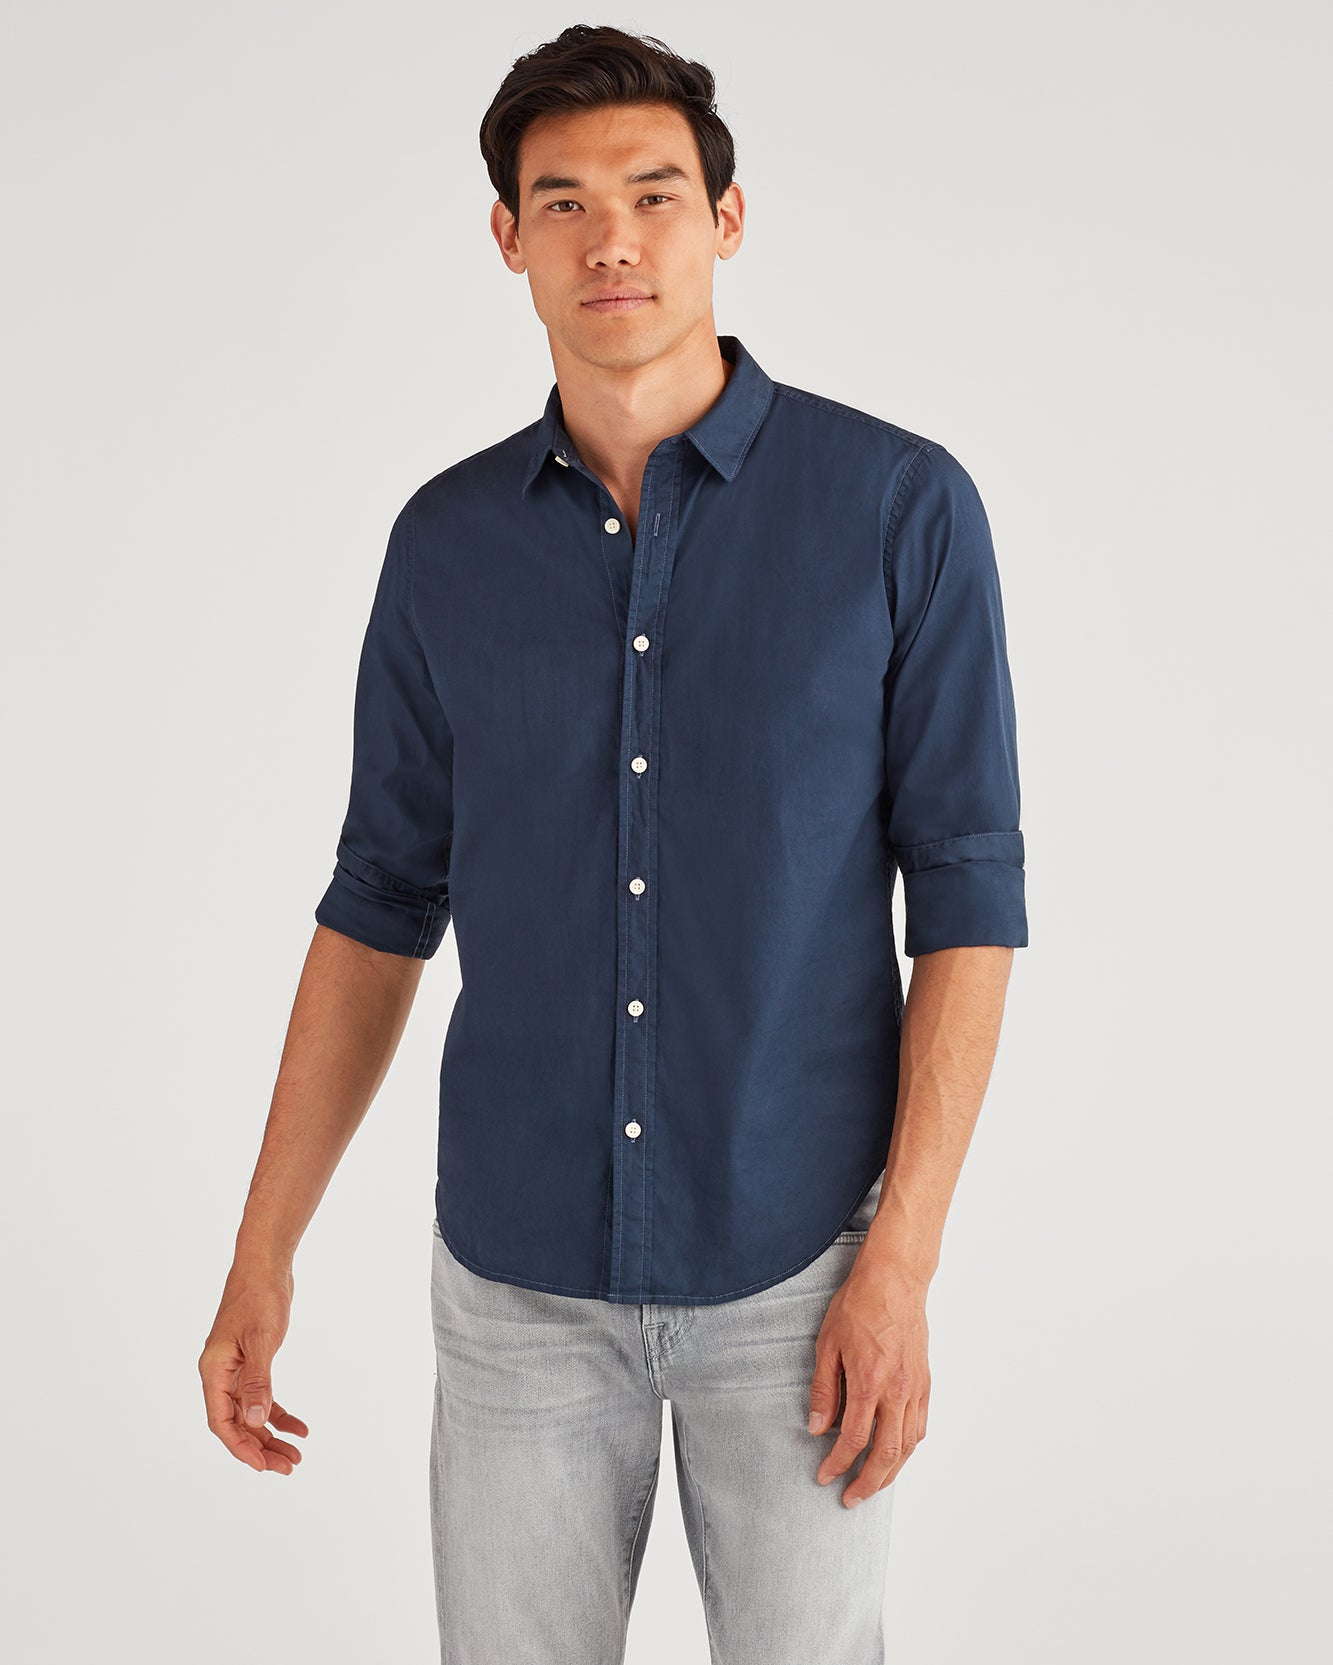 Image of Commuter Shirt in Pigment Navy